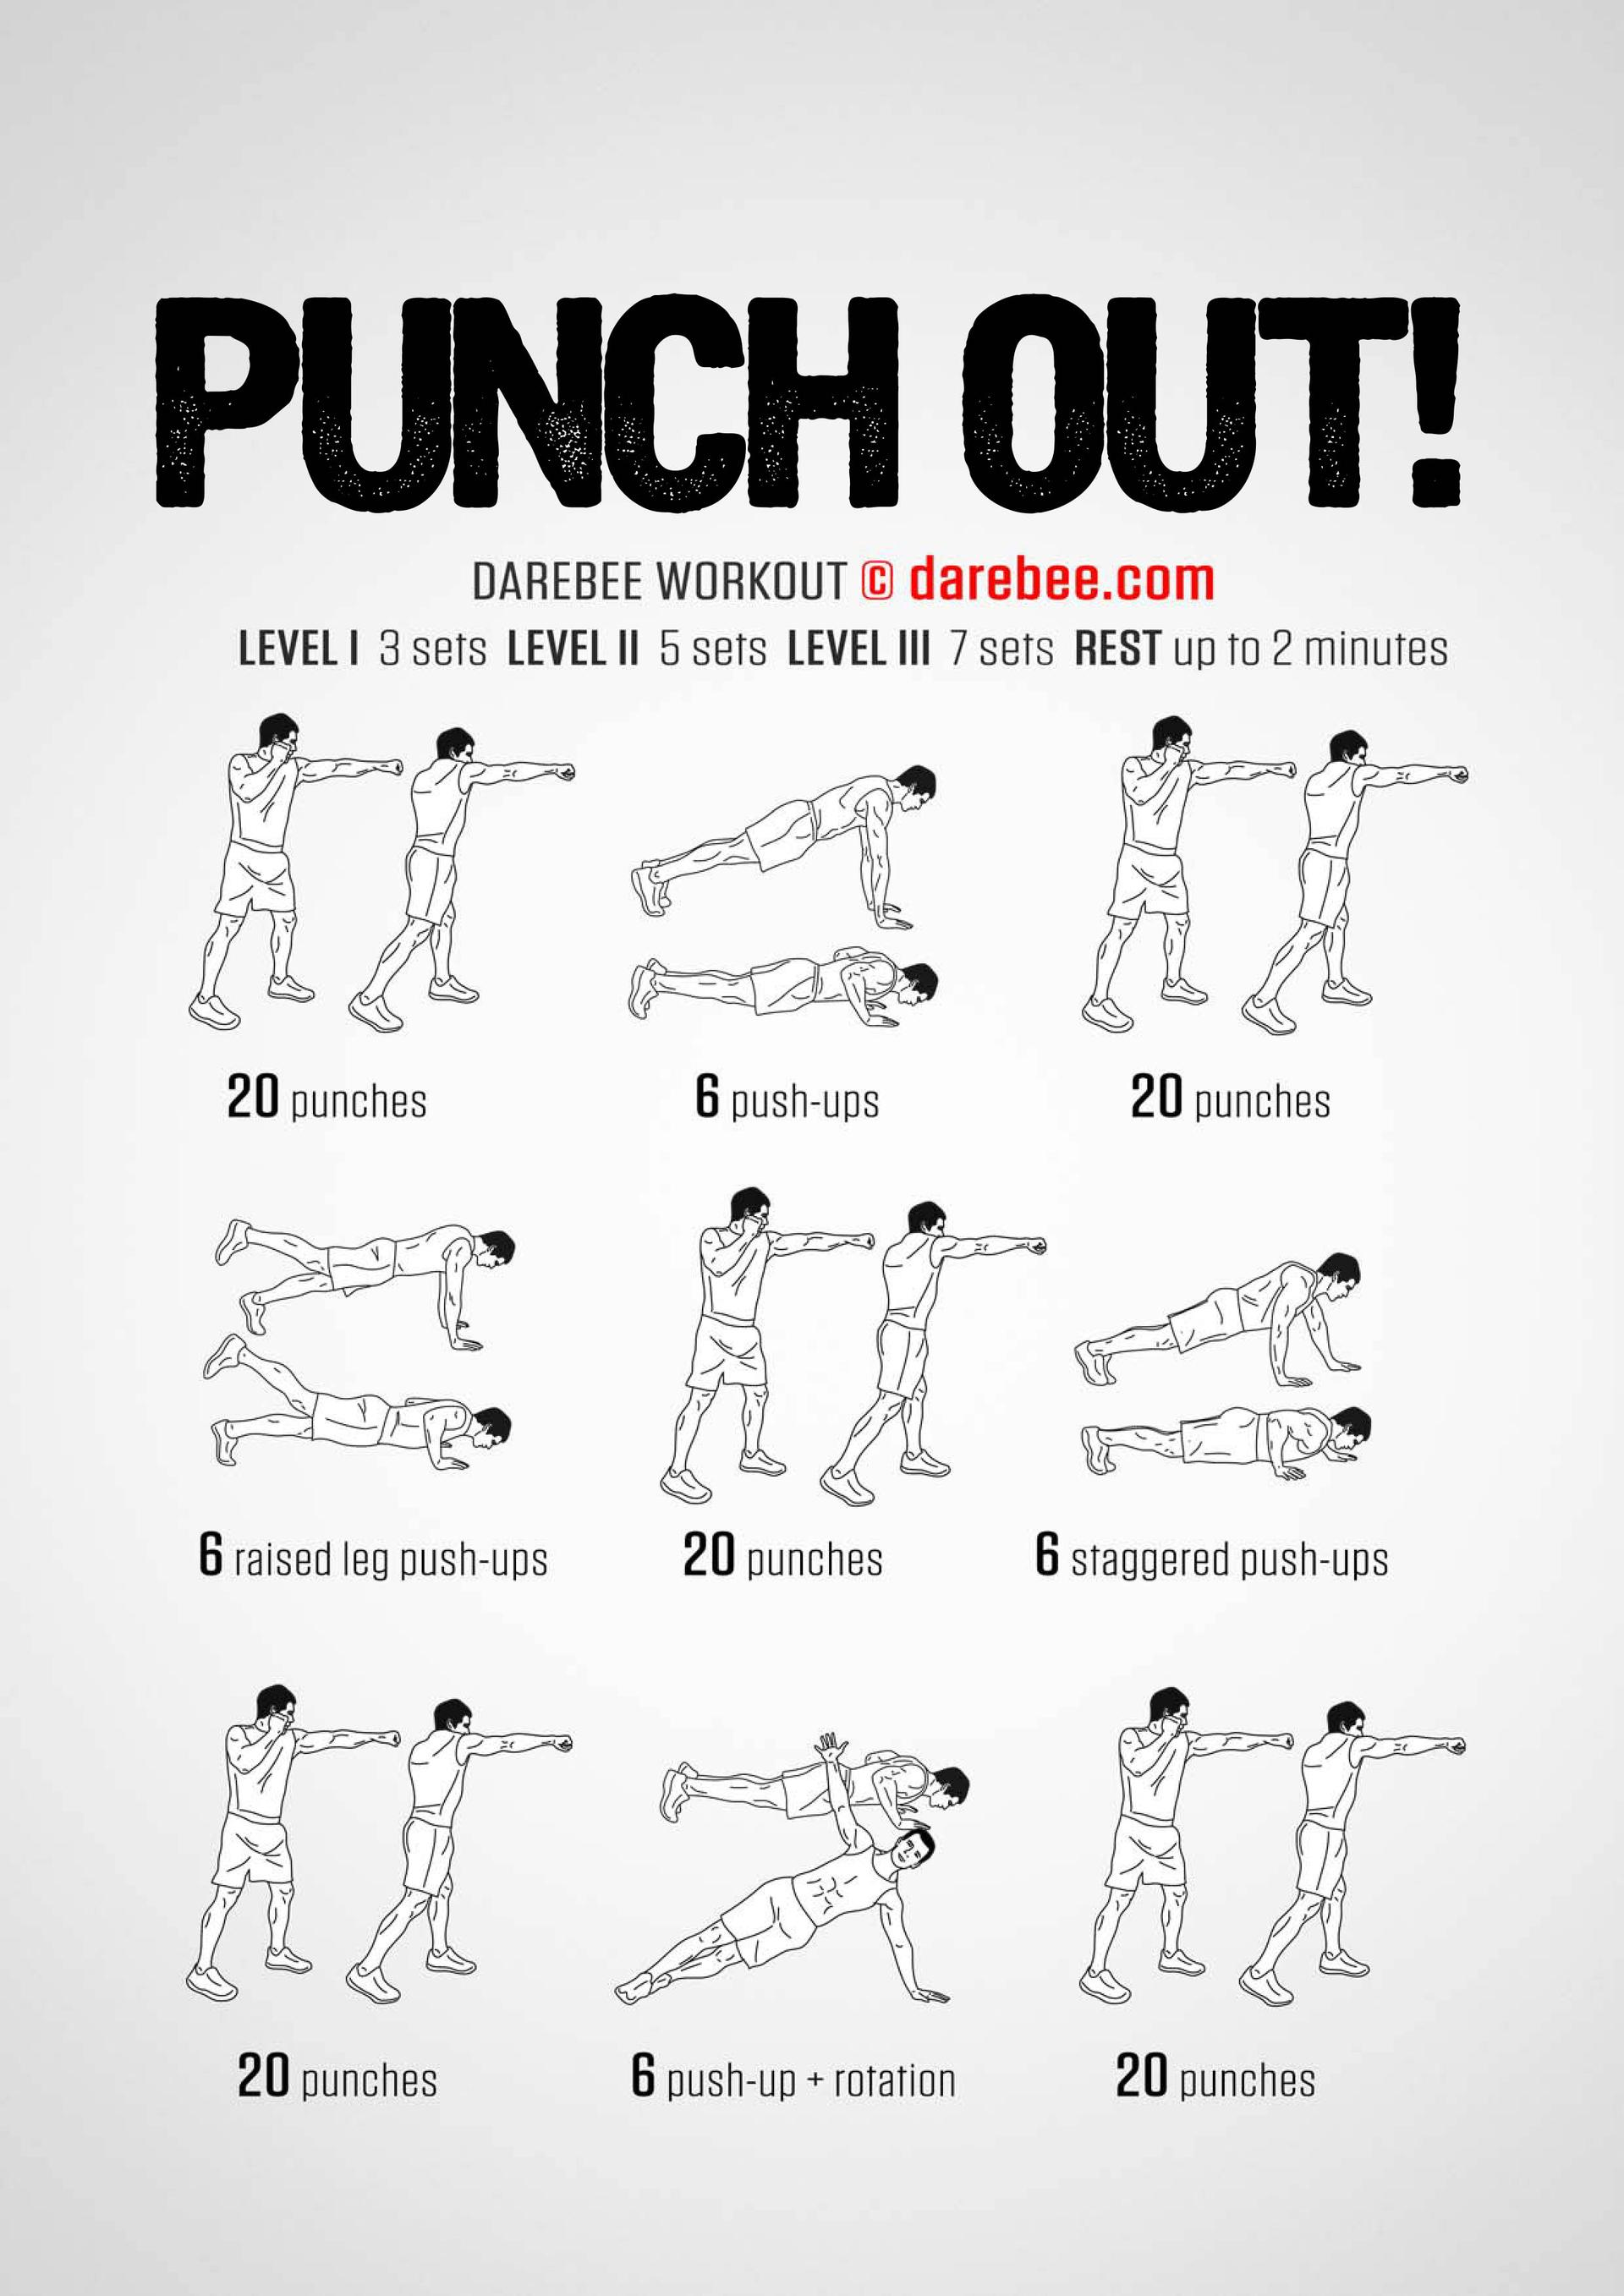 Punch Out! Workout by darebee.com